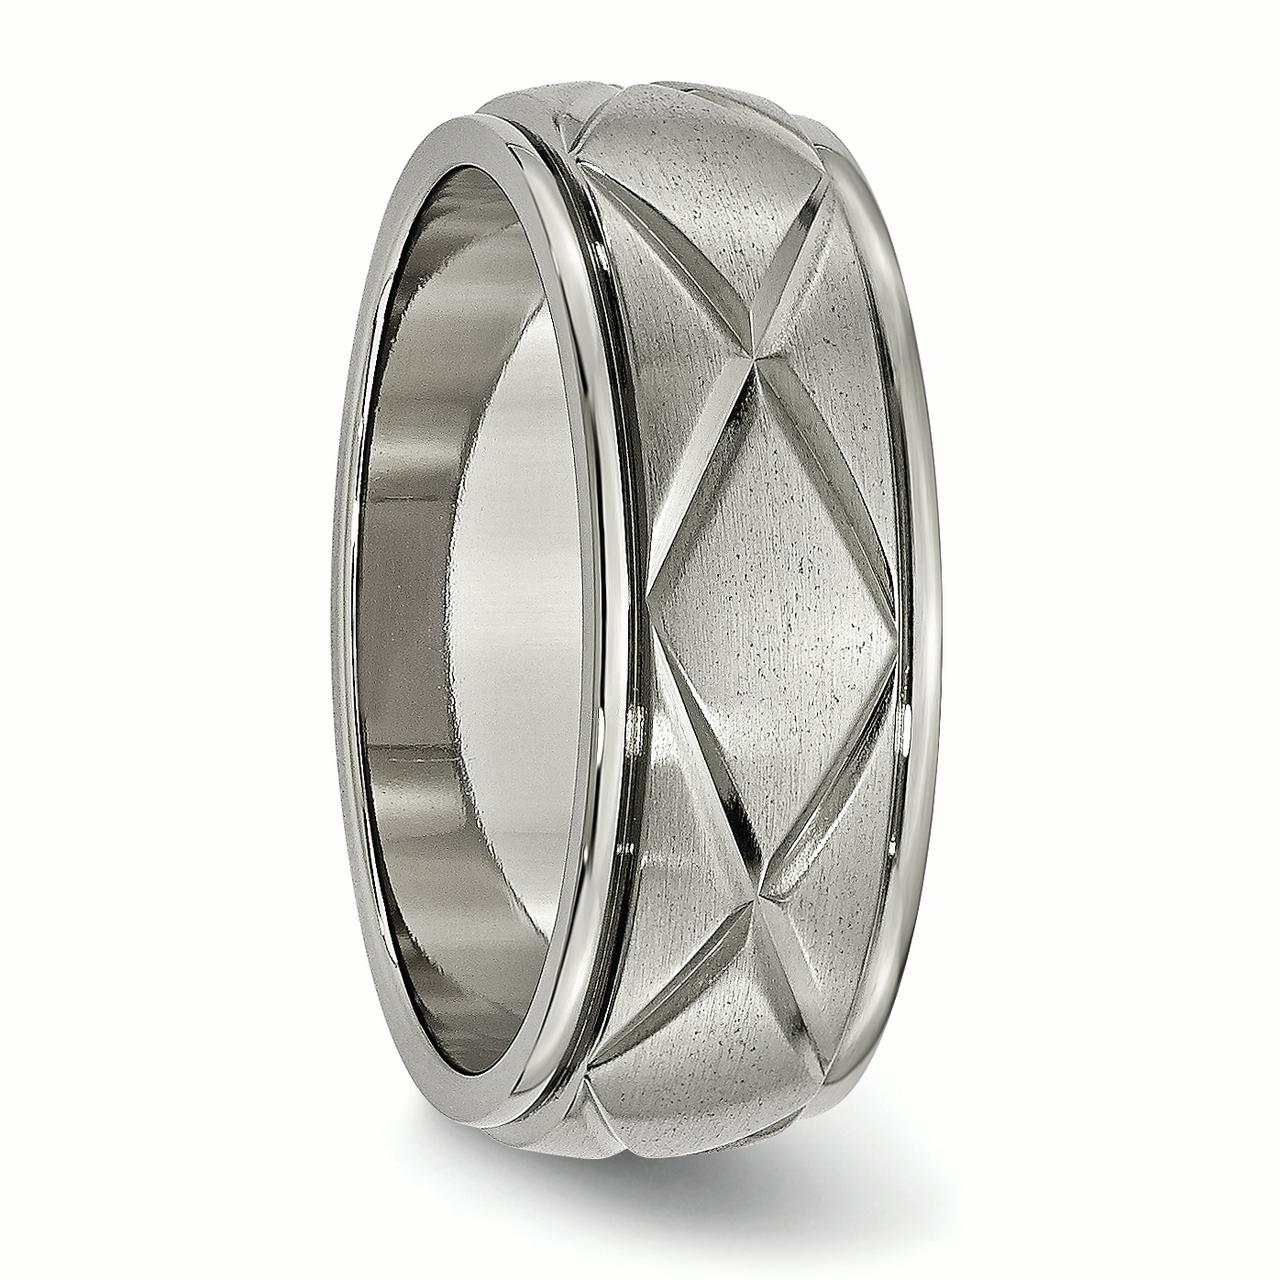 Edward Mirell Titanium Faceted Edges Brushed /& Polished 8mm Ring